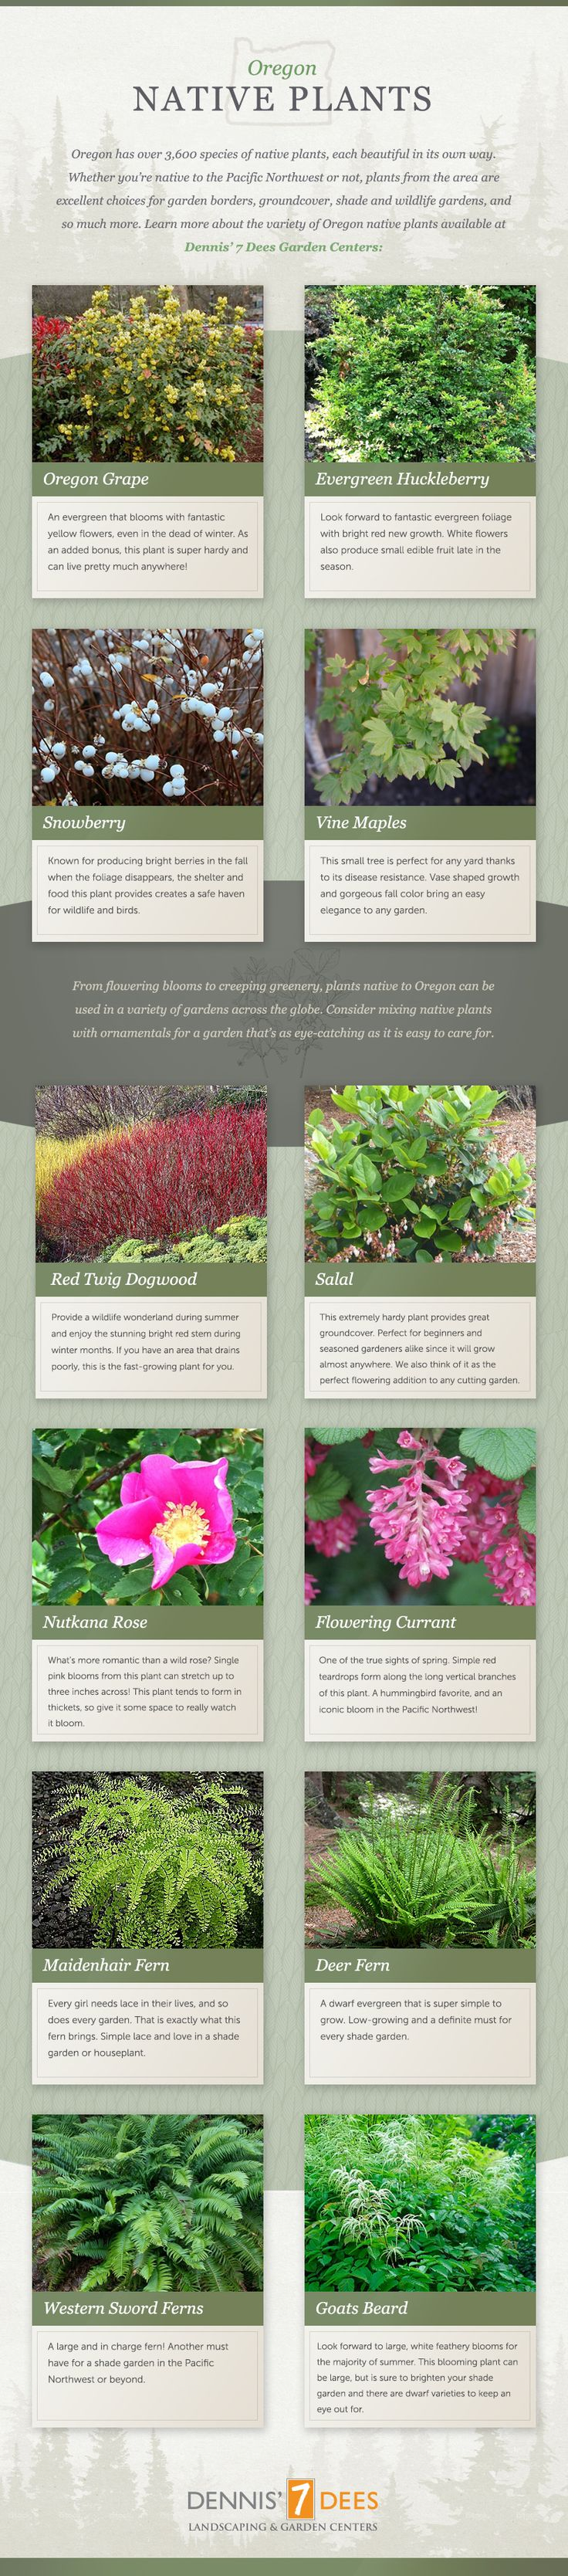 Oregon Native Plants | Portland Nursery | Dennis' 7 Dees | Dennis' 7 Dees